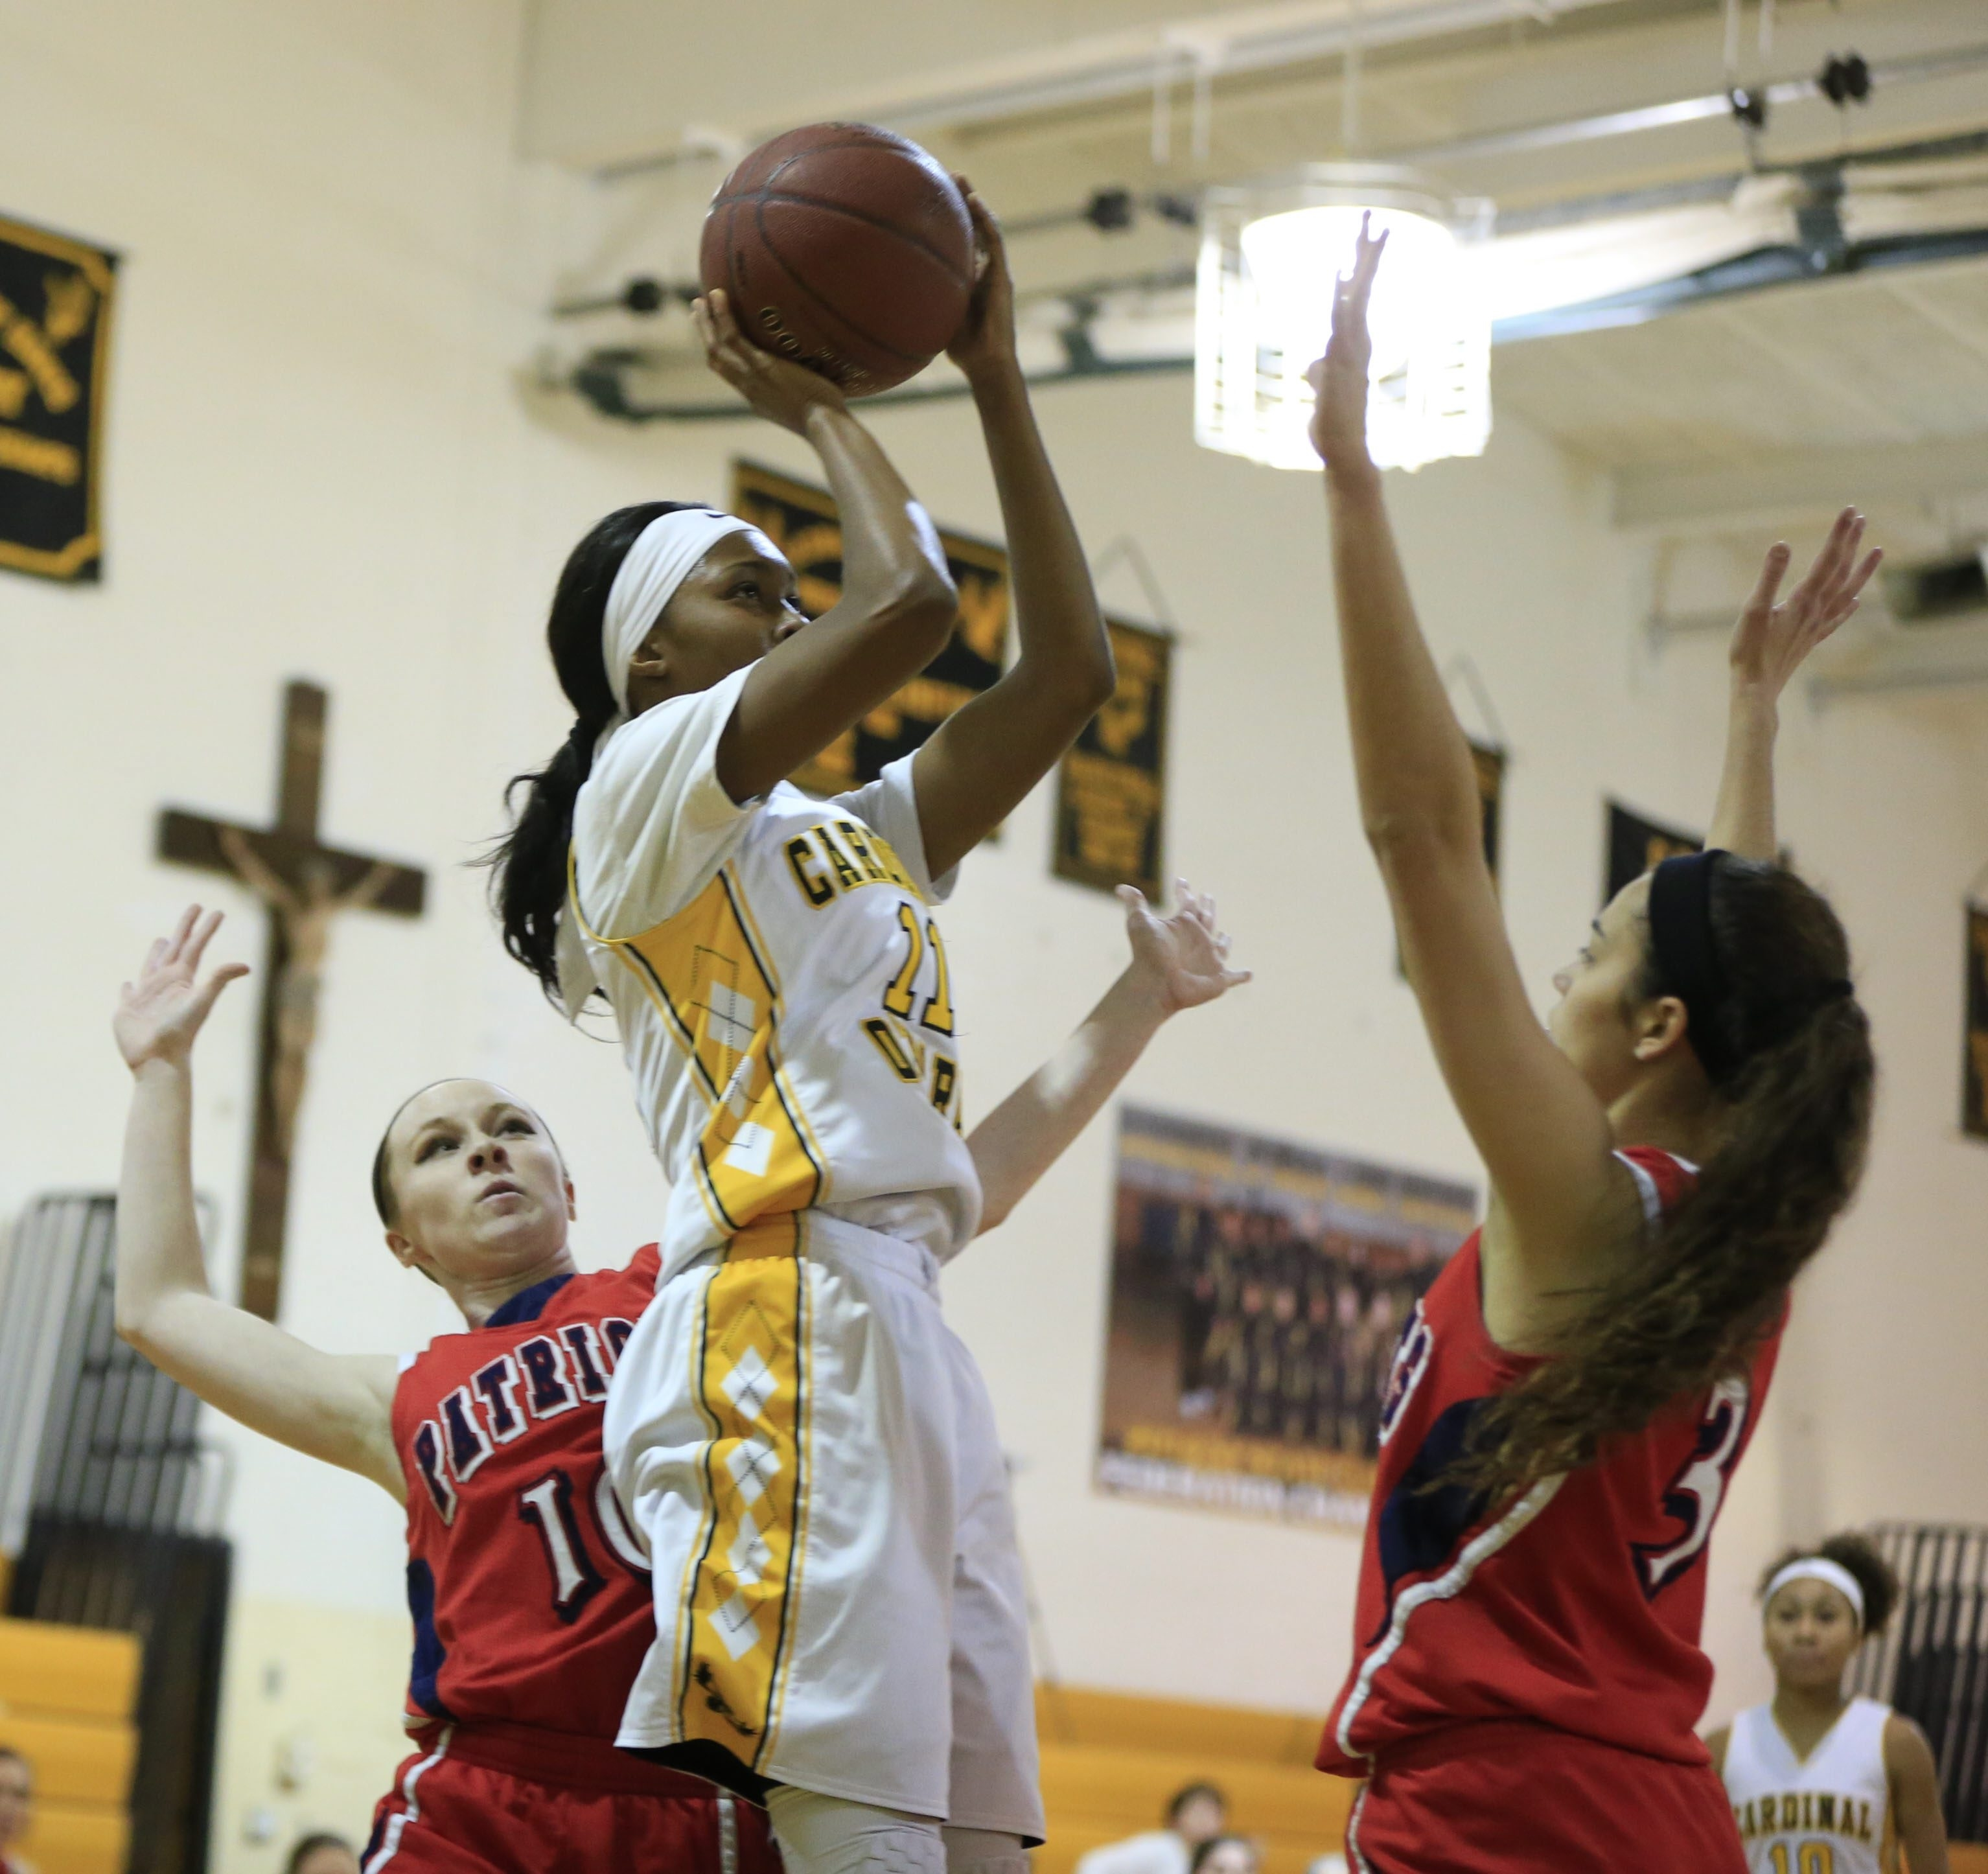 Anndea Zeigler and the Cardinal O'Hara Hawks face The Mary Louis Academy in the New York State Catholic High Schools Athletic Association Class AA semifinals on Friday night in New York City. (Harry Scull Jr./Buffalo News file photo)